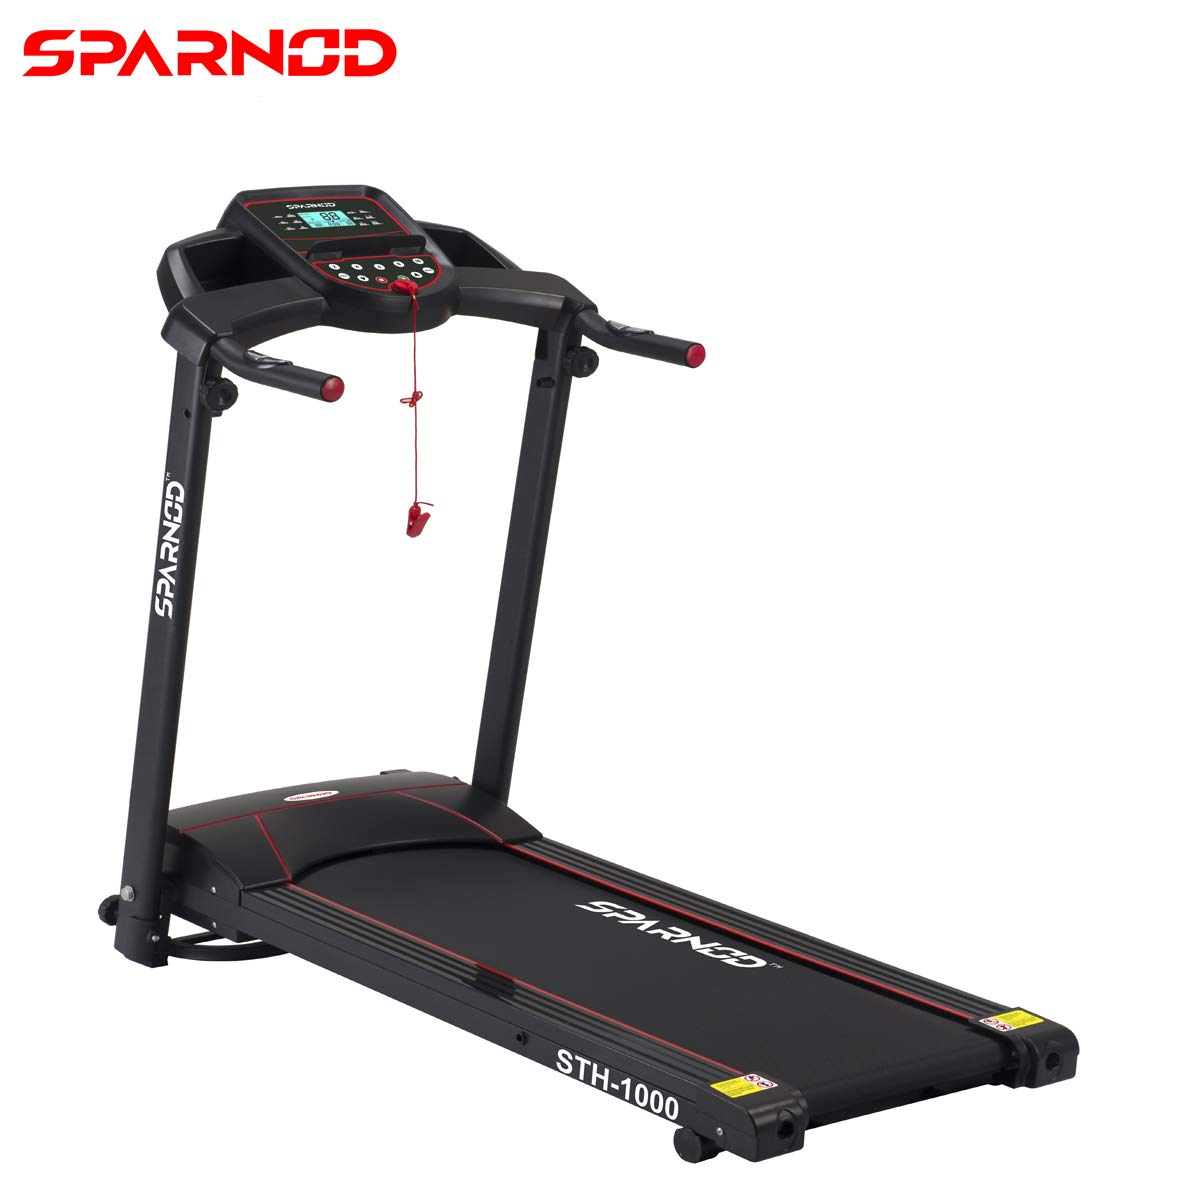 Sparnod Fitness STH-1000 (3 HP Peak) 100% Pre-Installed Foldable Portable Motorized Running Treadmill for Home Use Automatic (B0844HQHYM) Amazon Price History, Amazon Price Tracker